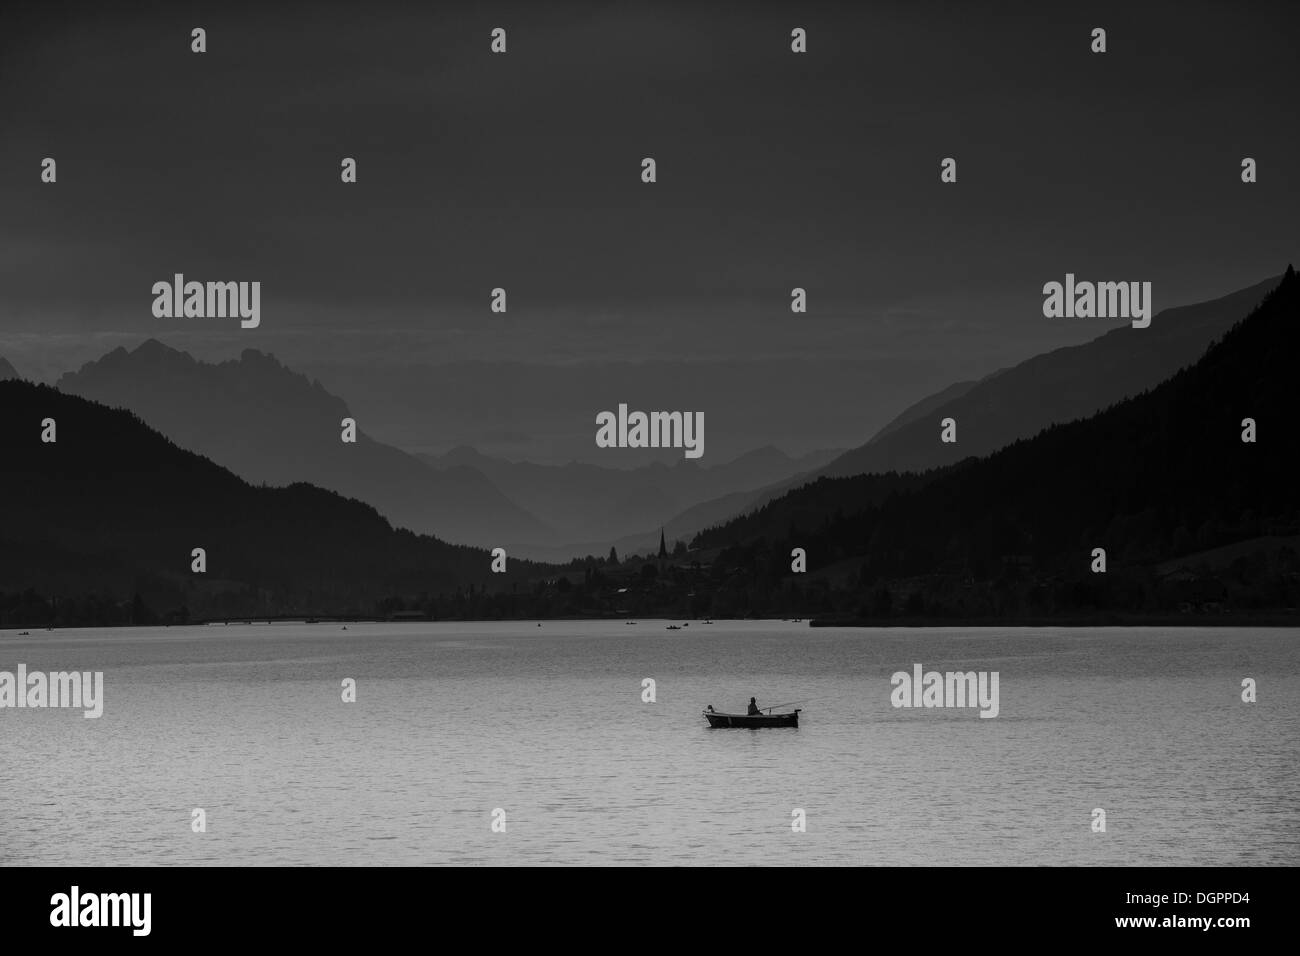 View over Weissensee lake towards Techendorf in the evening light, with a fisherman in a rowboat at the front, Weissensee lake - Stock Image